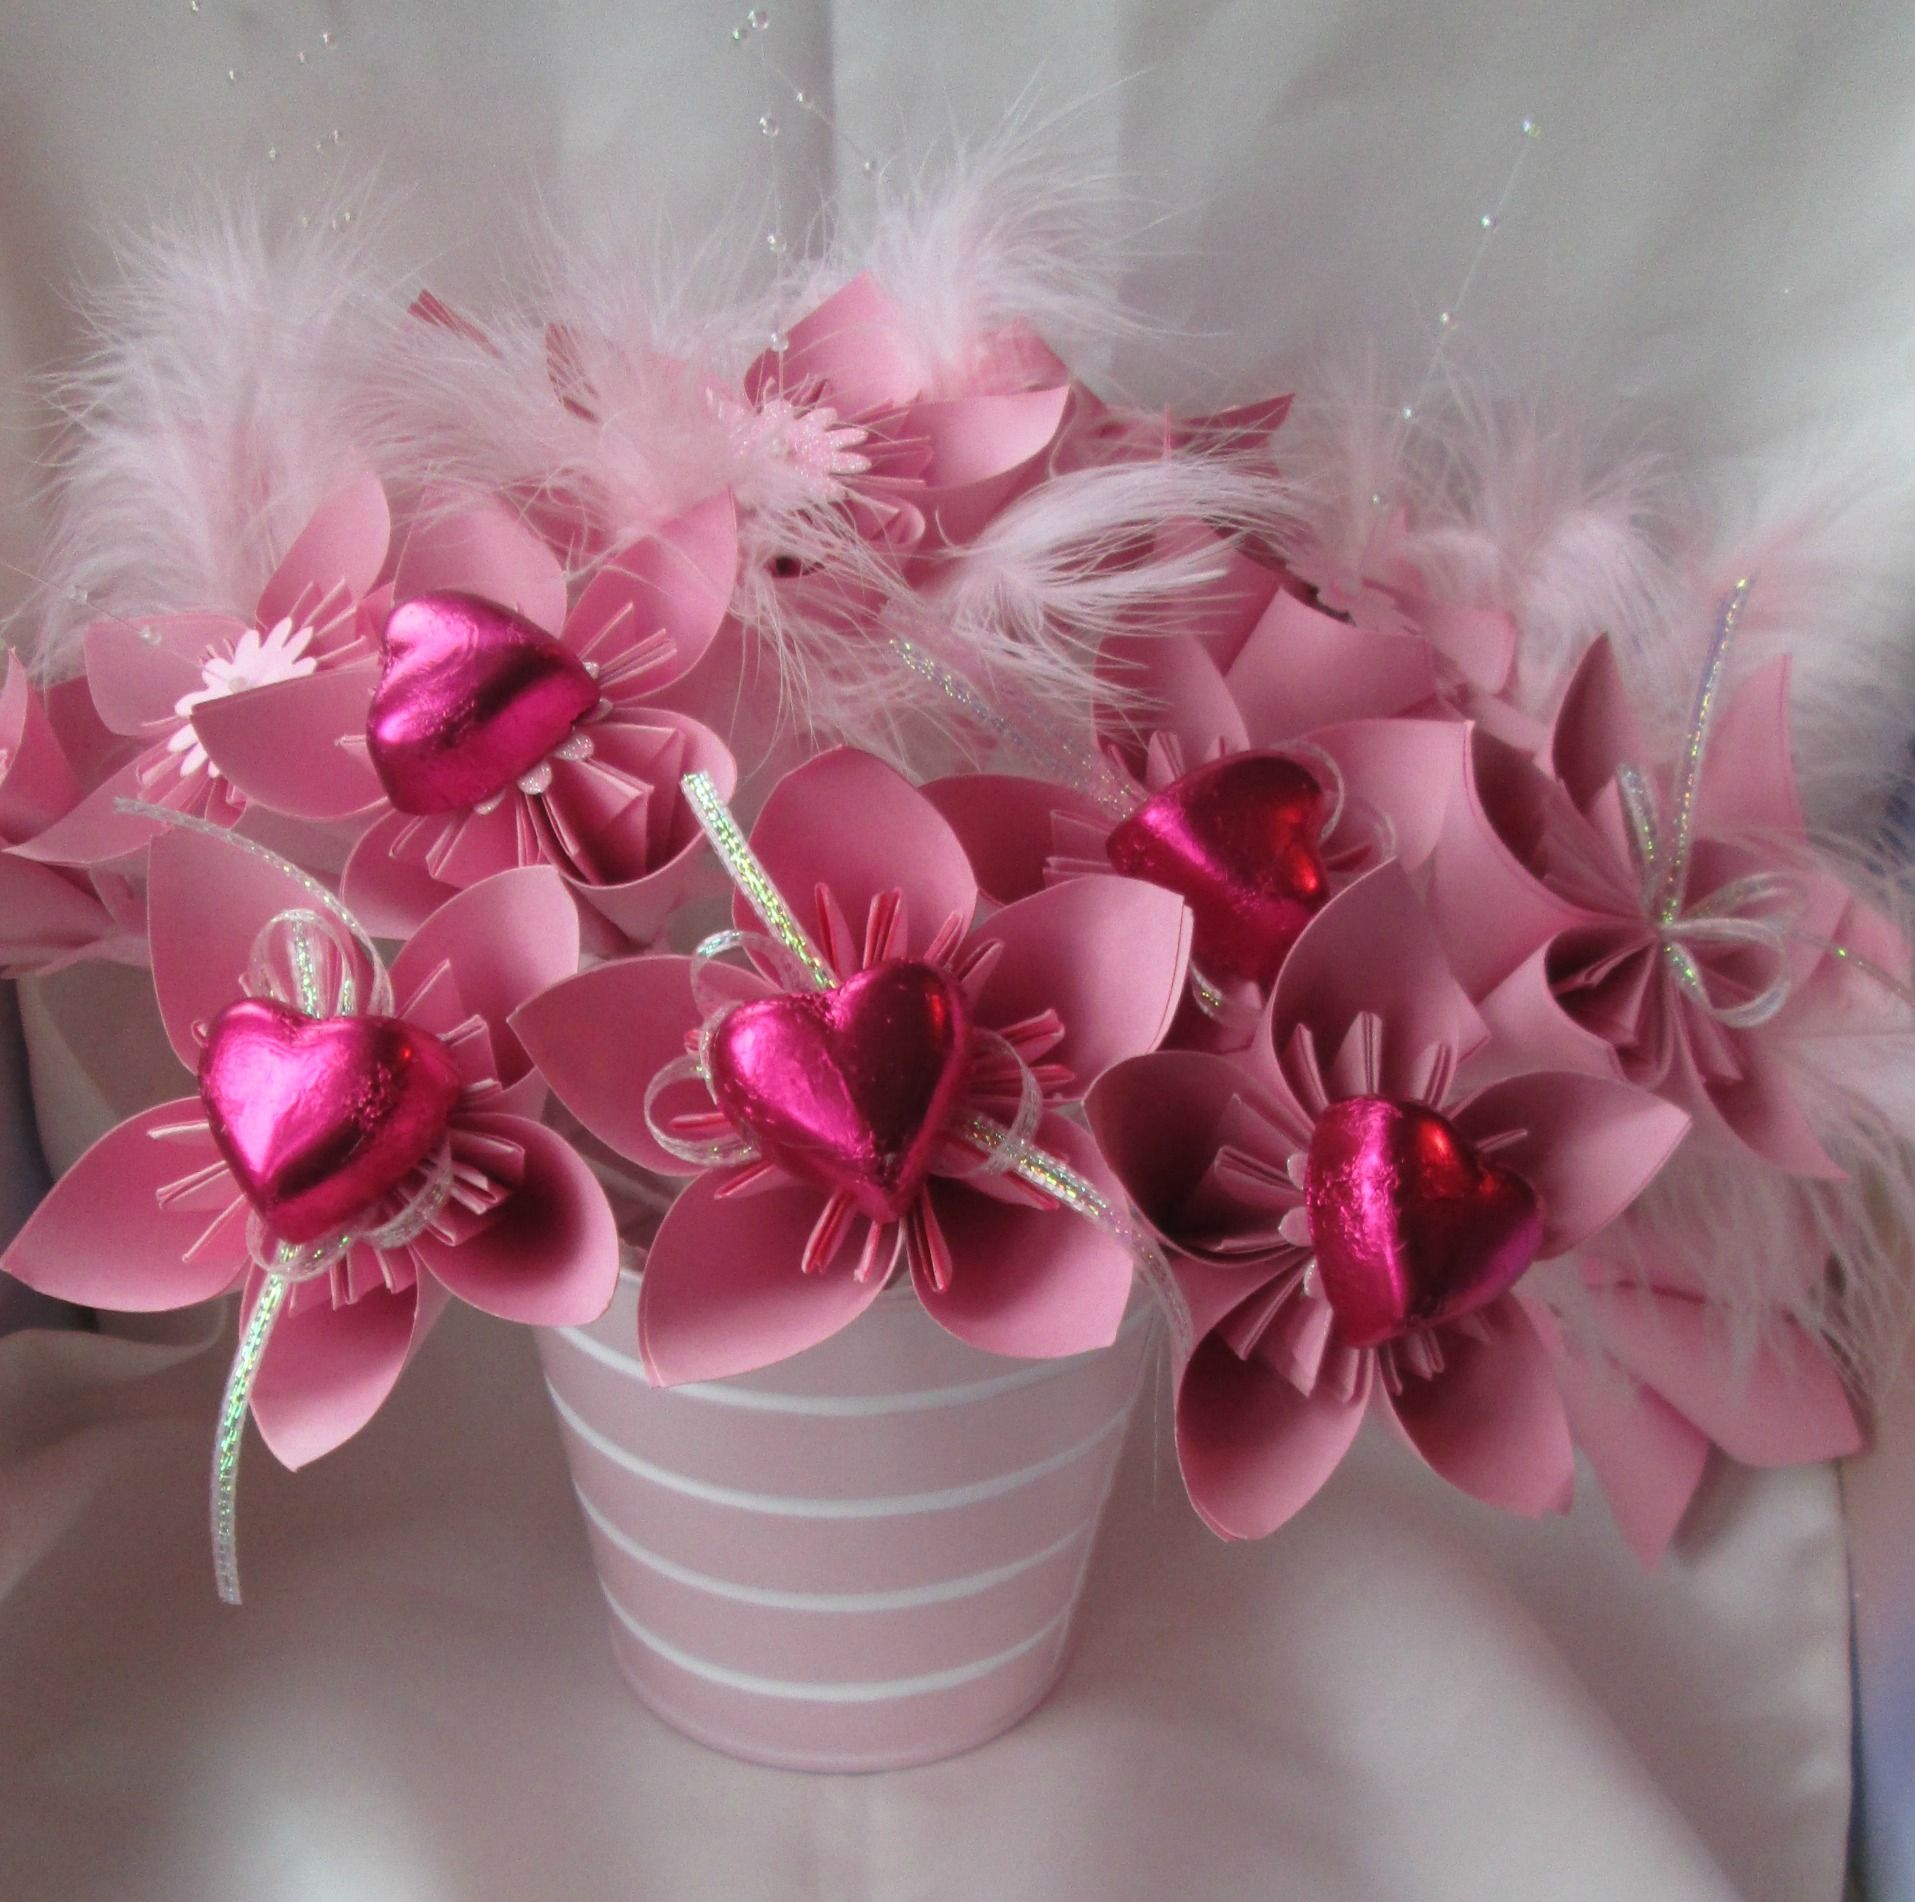 Chocolate bouquet on pinterest candy flowers bouquet of chocolate - Pink Origami Flowers With A Heart Shaped Chocolate Centre Mmmm Paper Flower Bouquetscandy